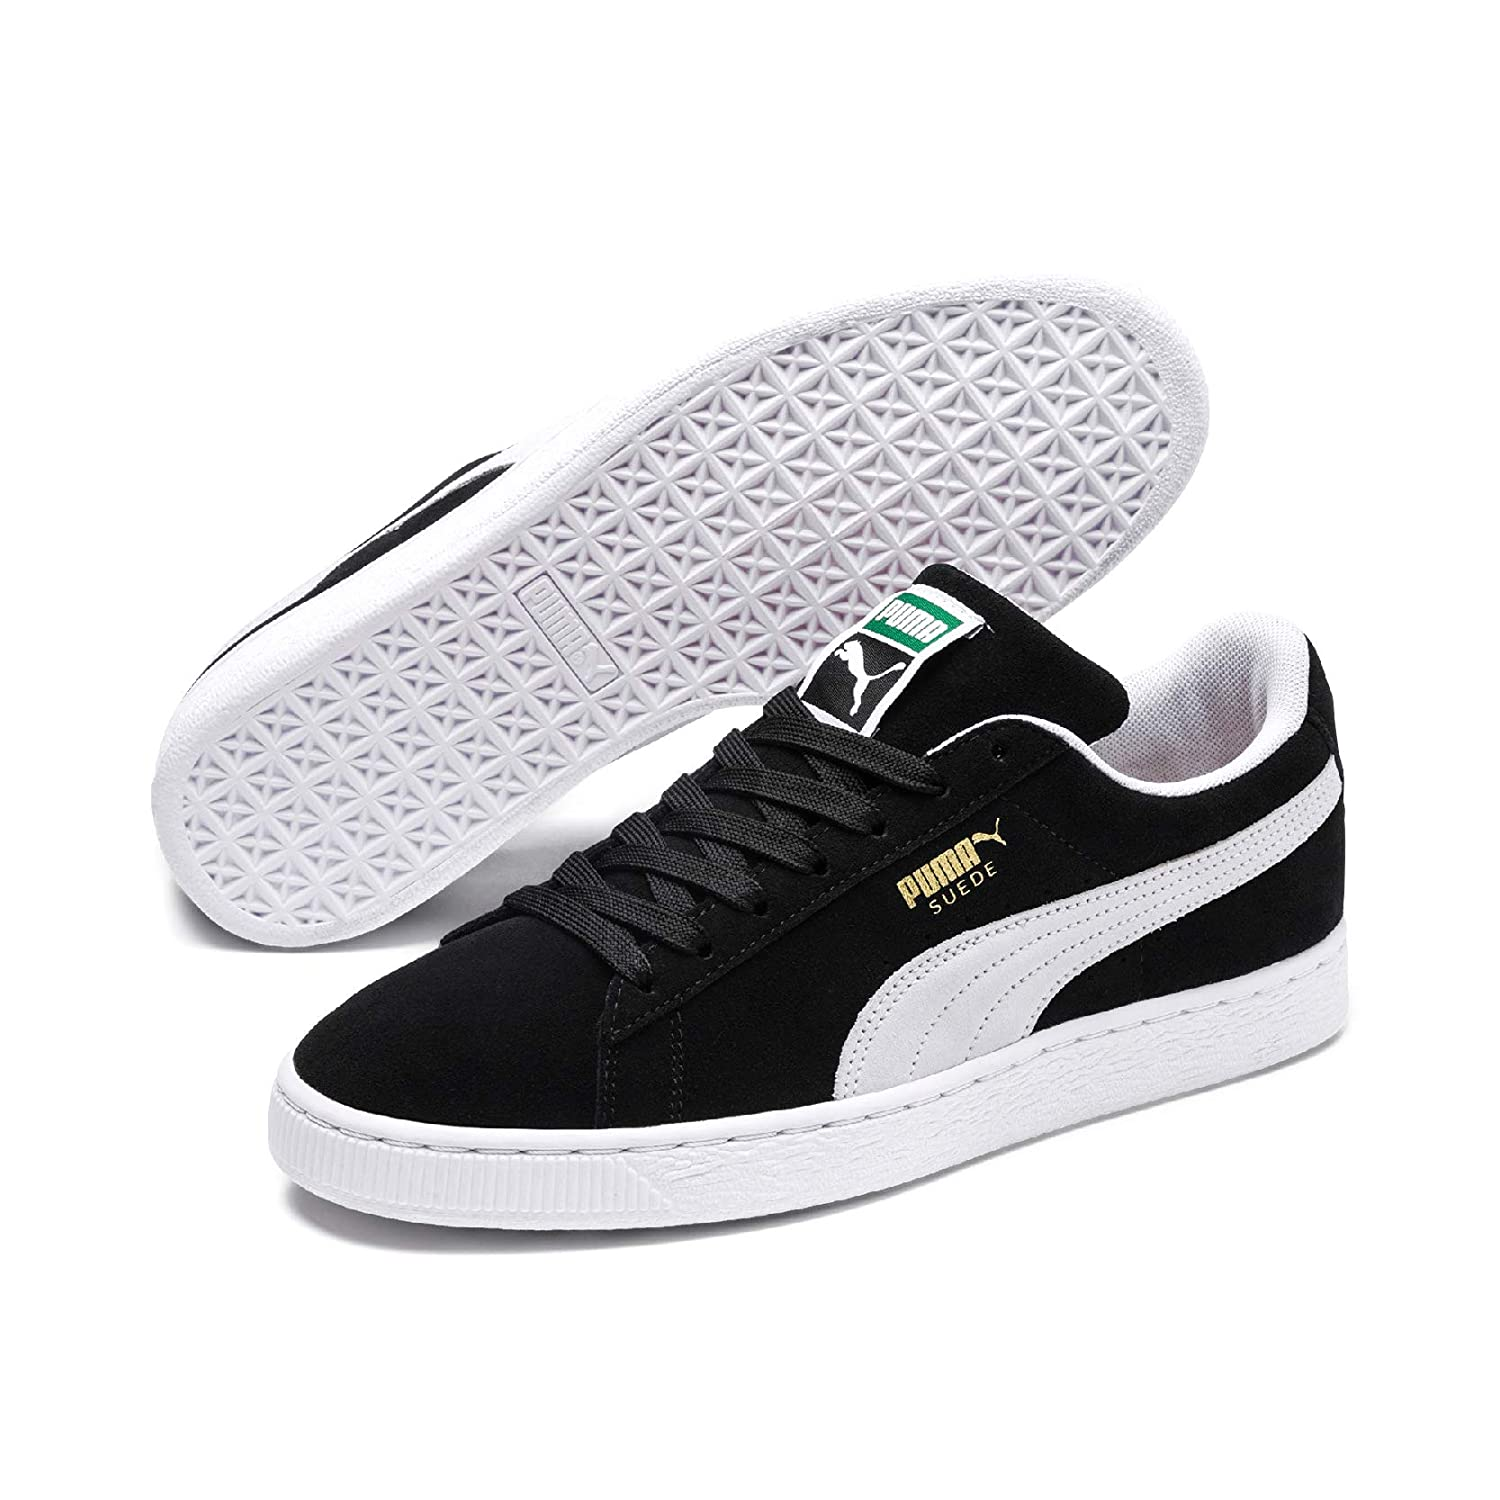 94e335d354 Amazon.com  PUMA Select Men s Suede Classic Plus Sneakers  Puma  Shoes